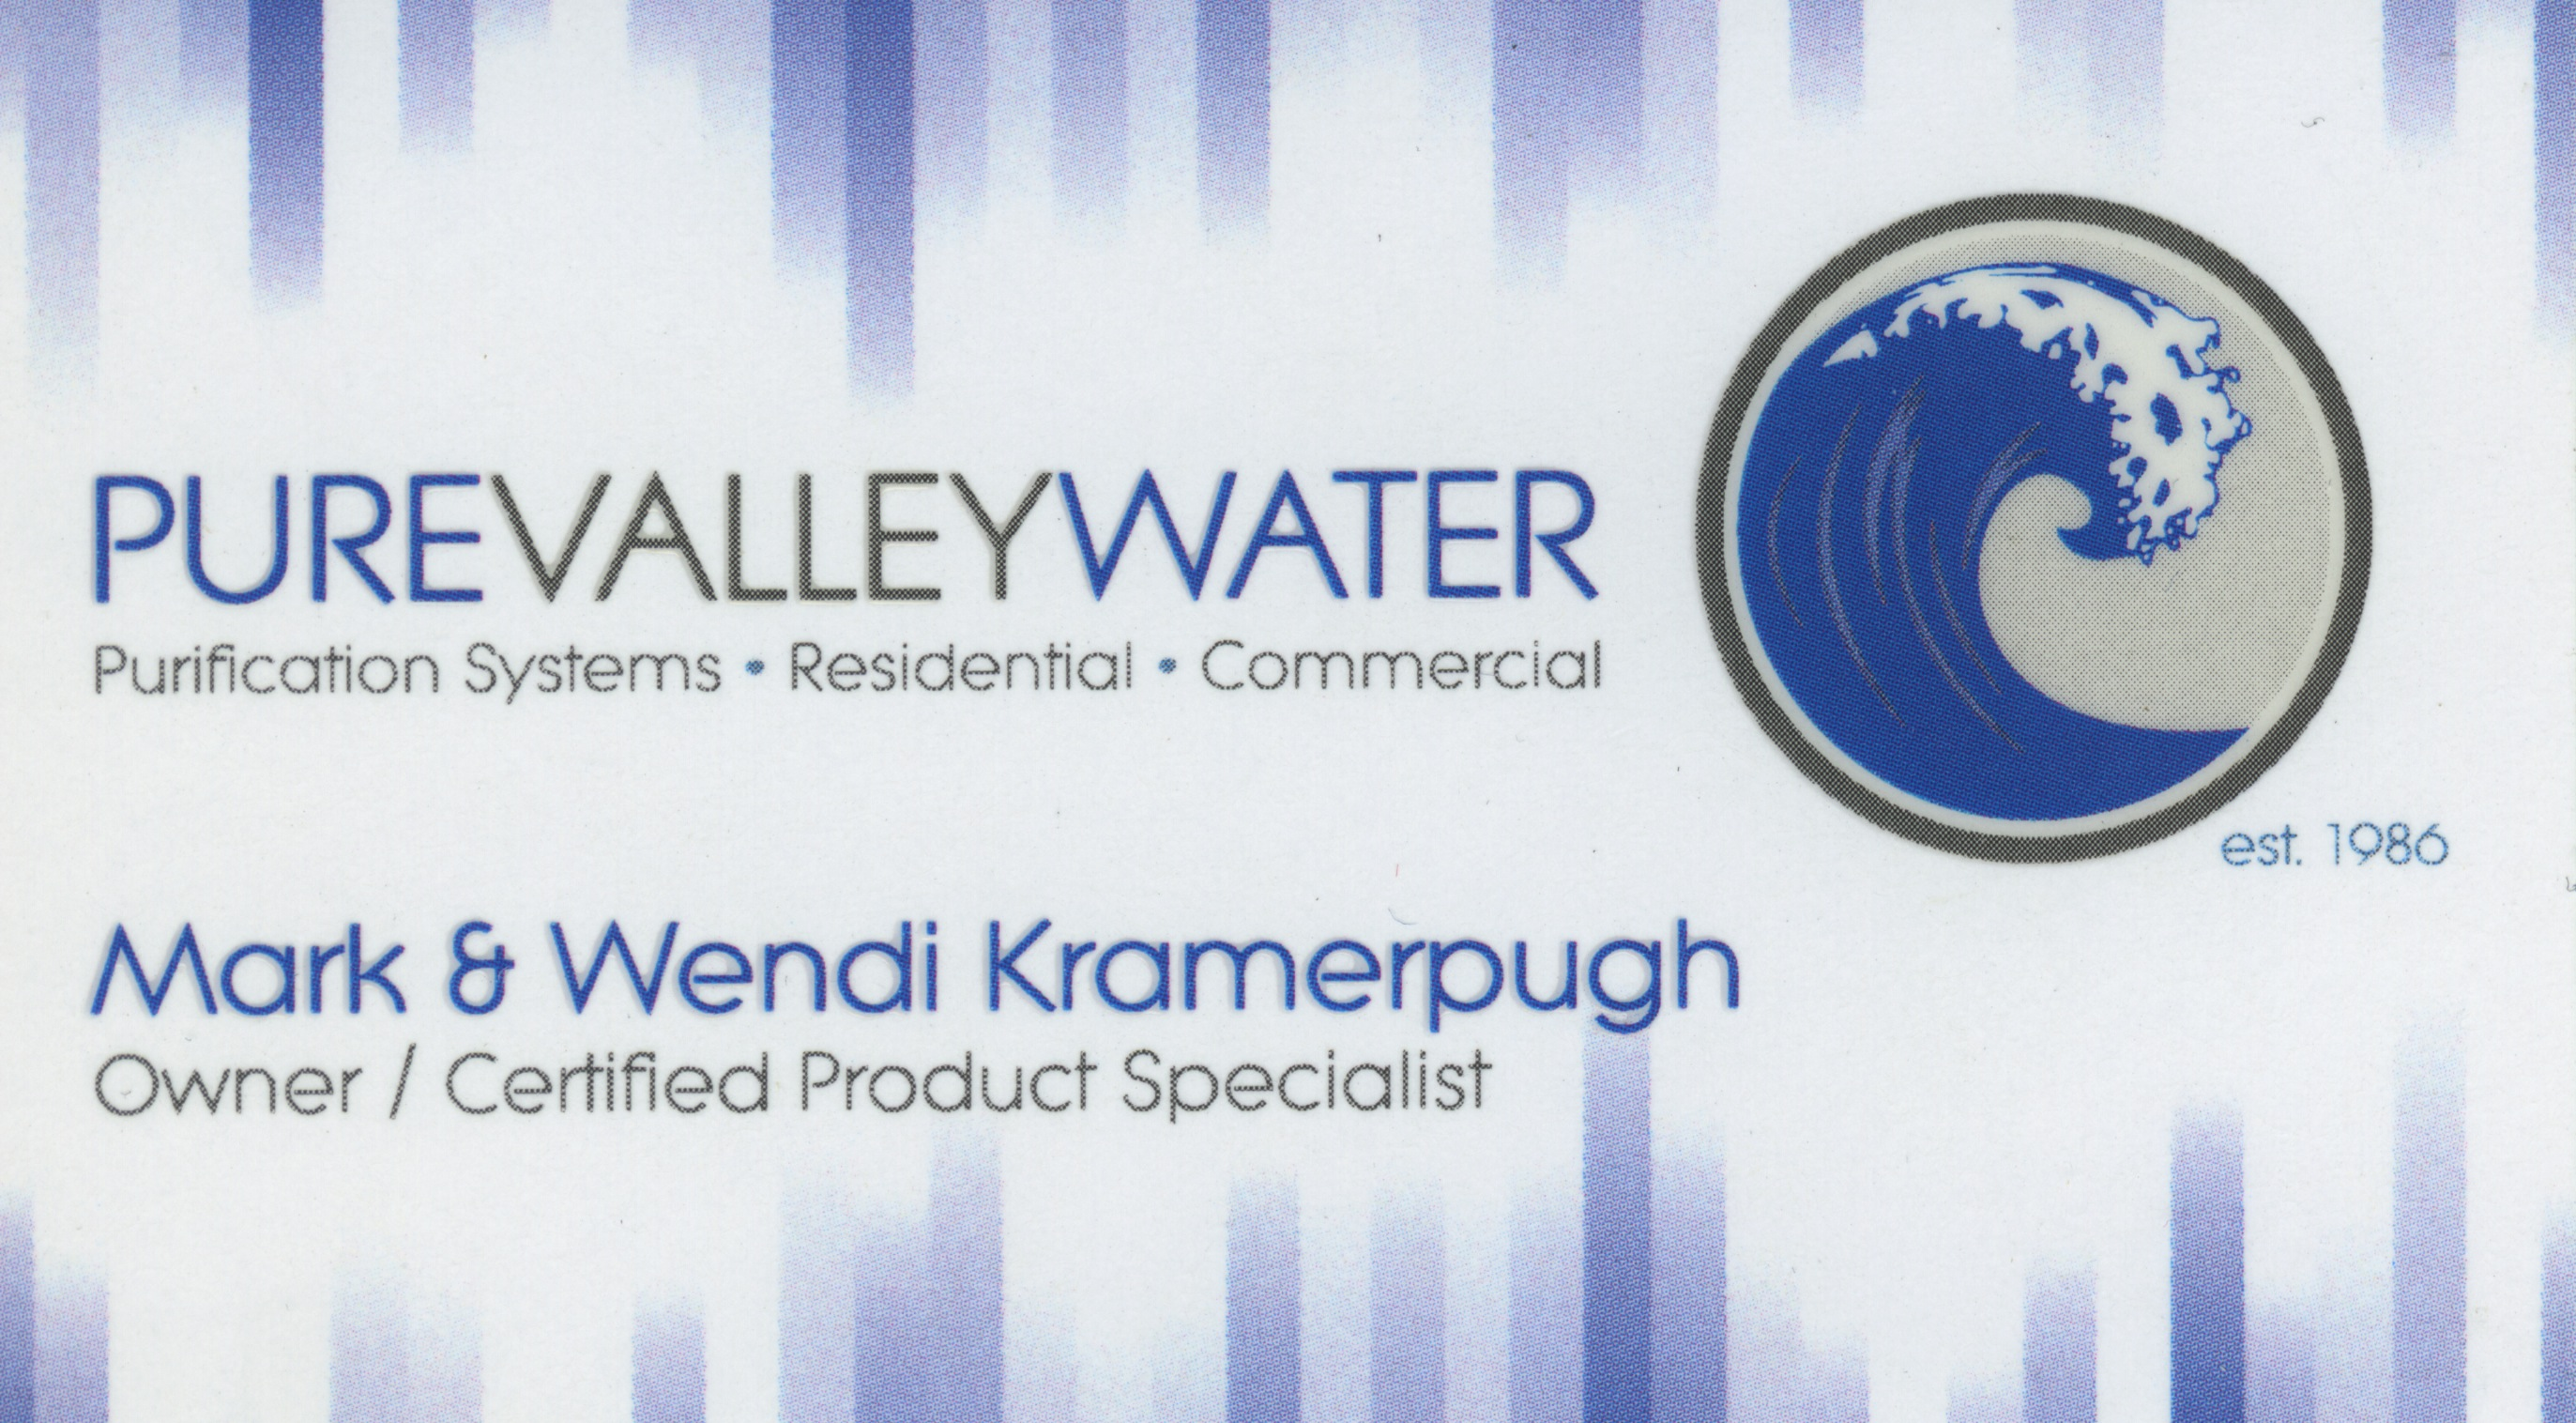 Pure Valley Water